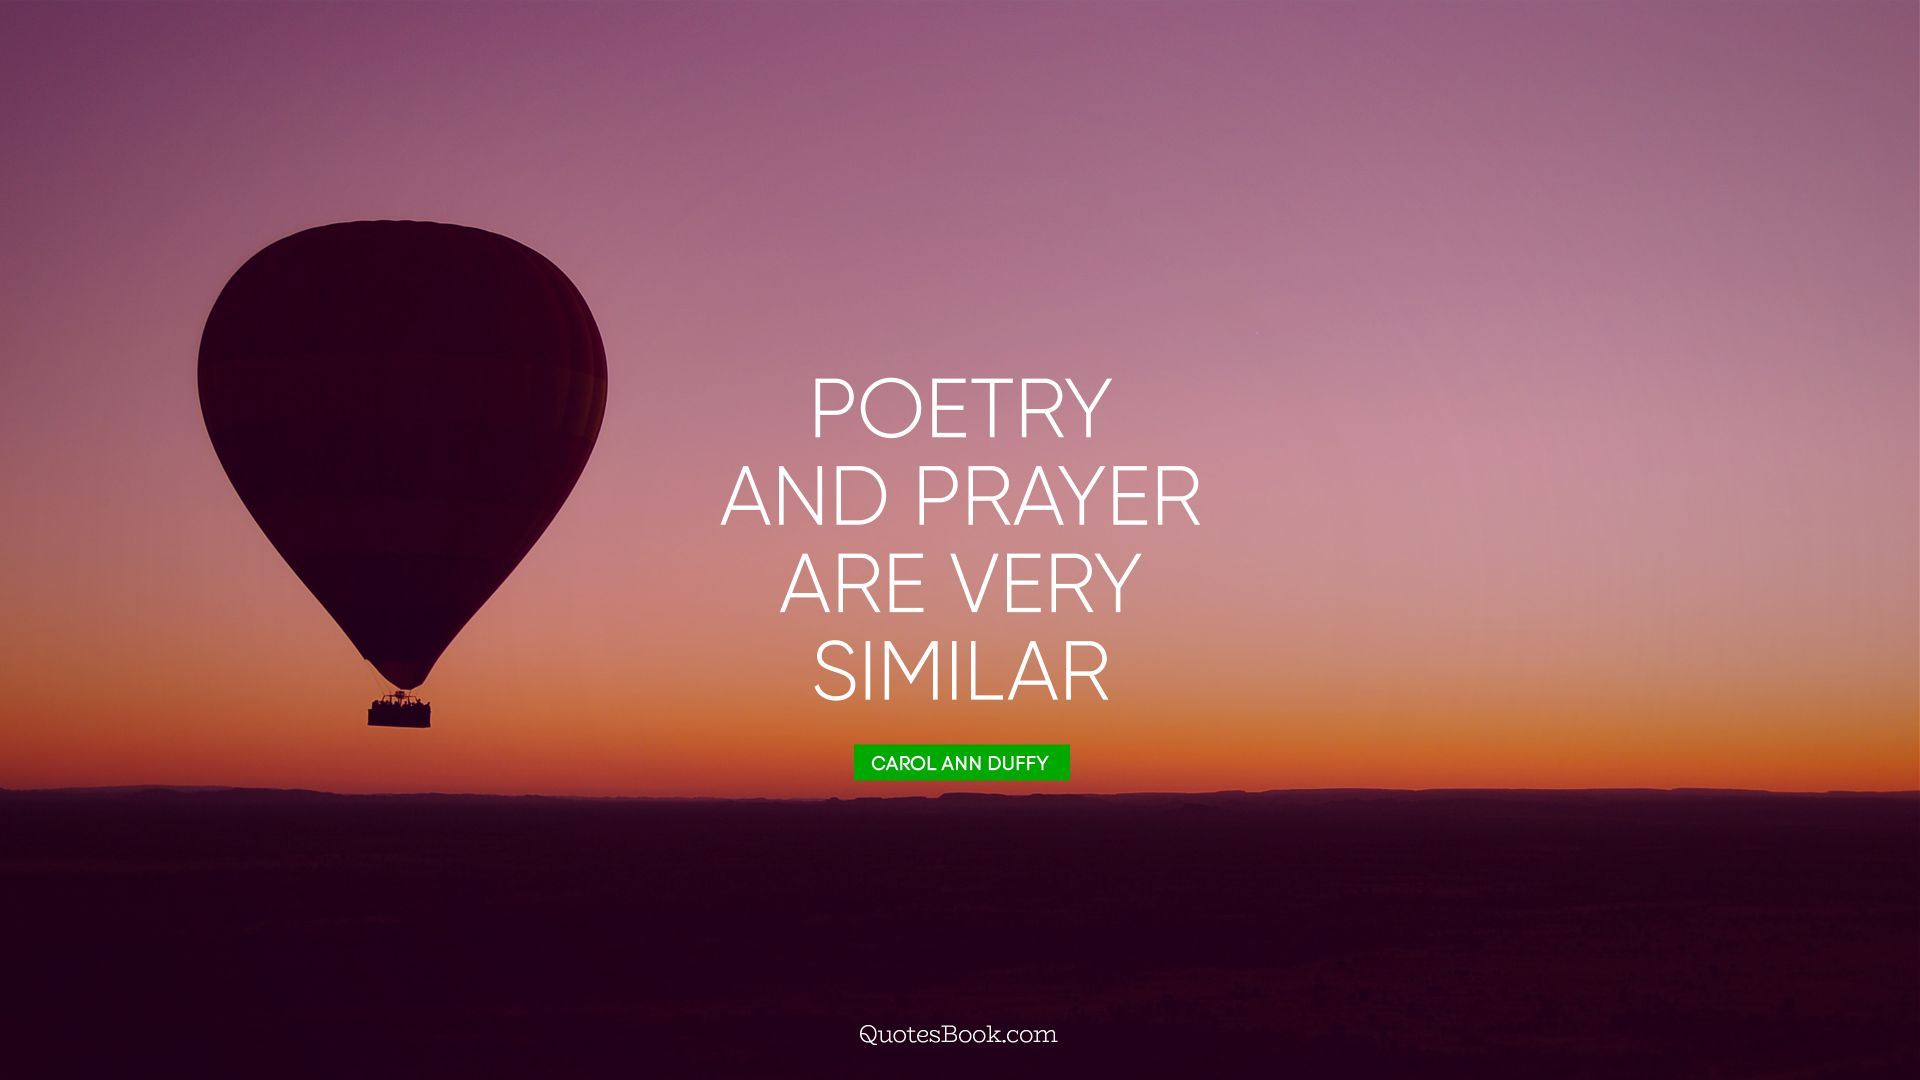 Poetry and prayer are very similar. - Quote by Carol Ann Duffy